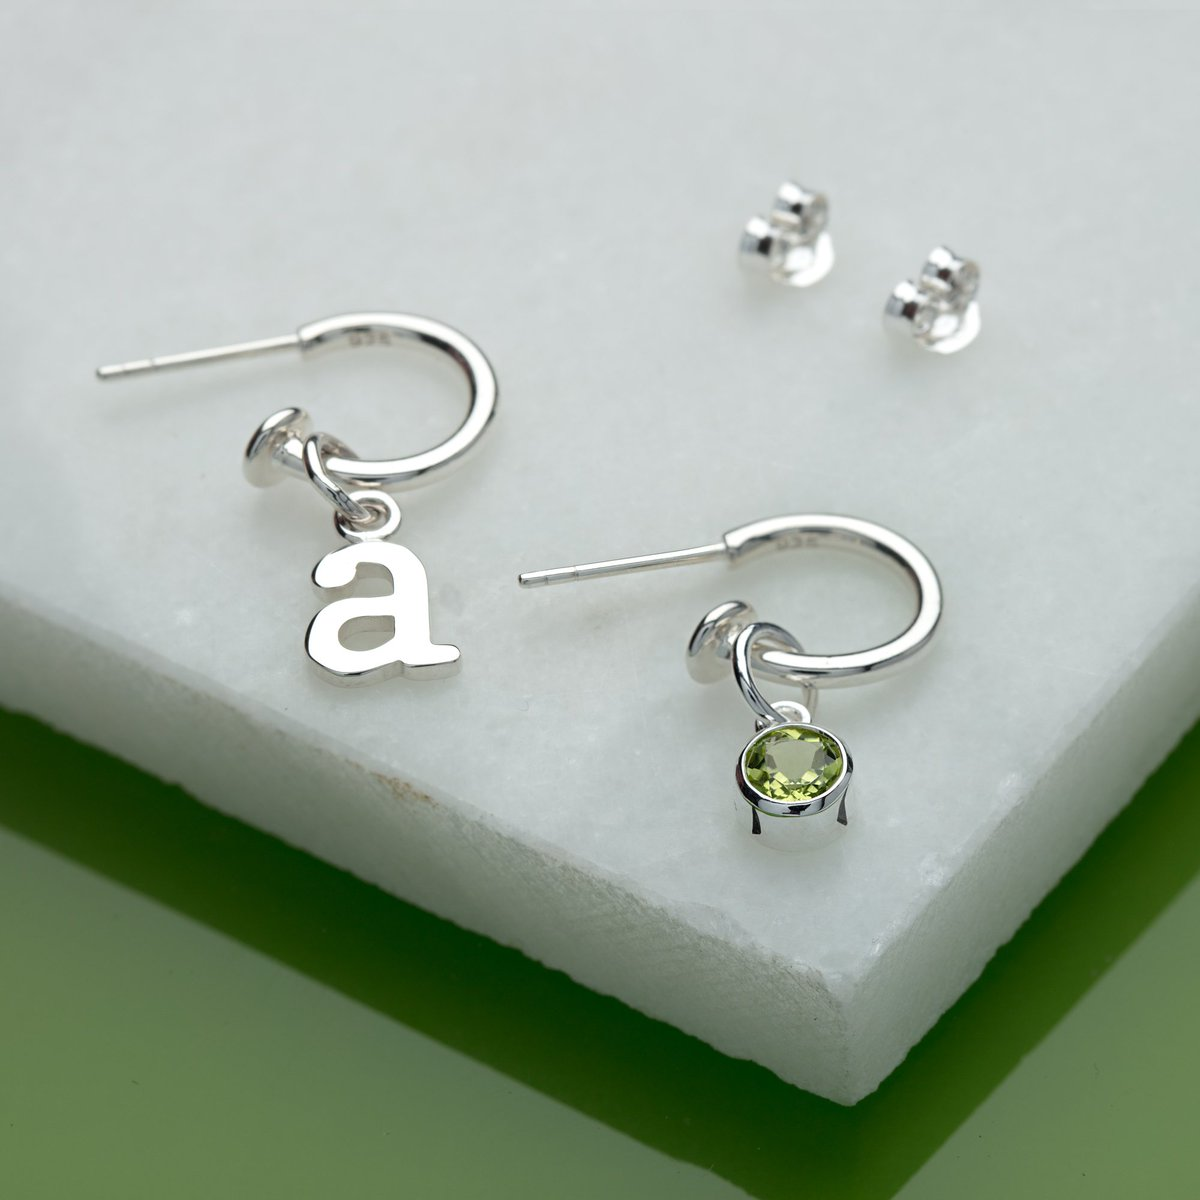 7313640ac ... charm for on trend, asymmetrical style! (May's birthstone is emerald)  An inspired birthday gift or treat for yourself! http://ow.ly/49hx50ulagQ  ...